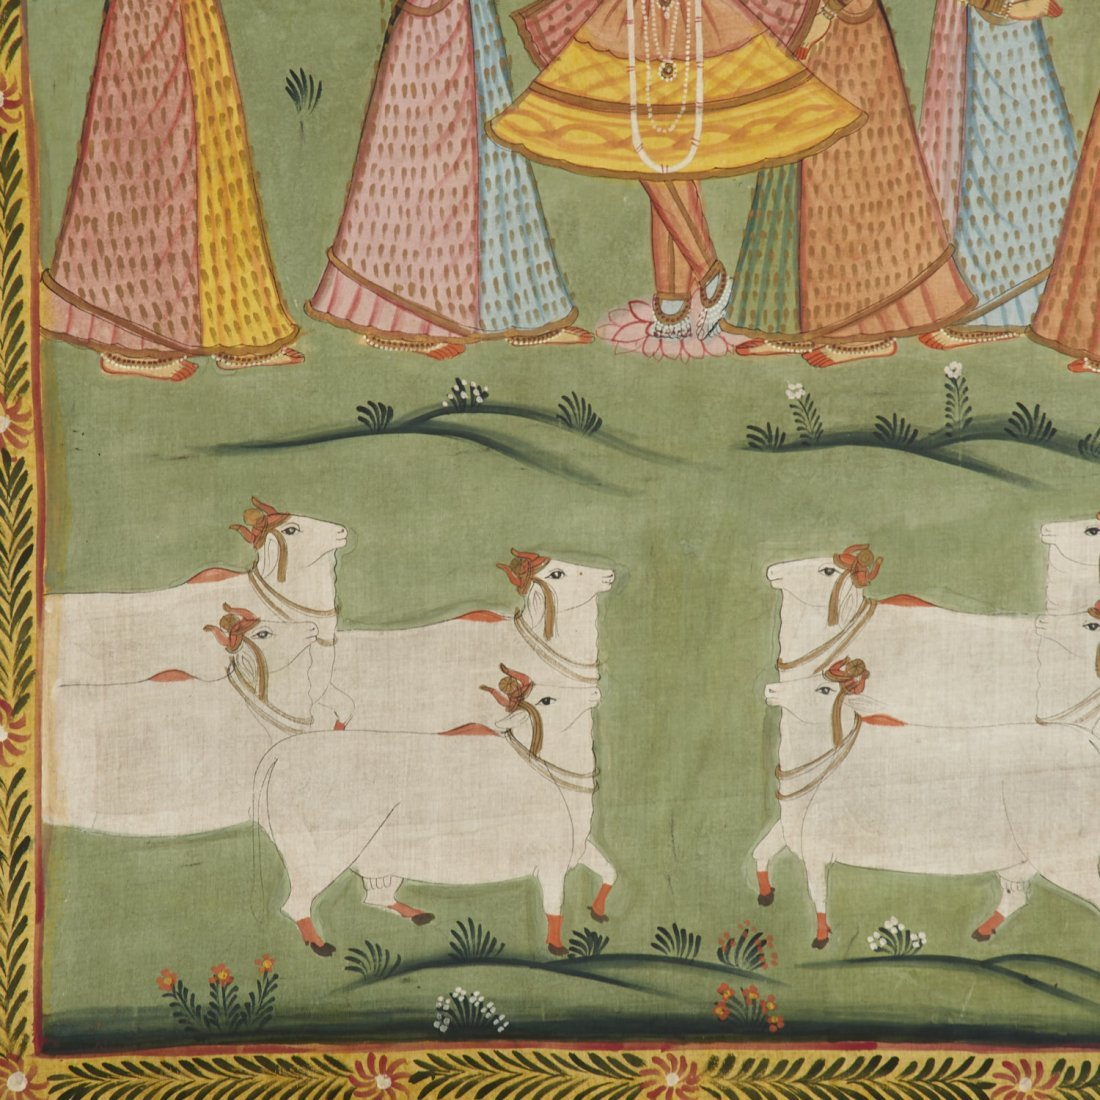 Indian School, large painting on cloth - 3